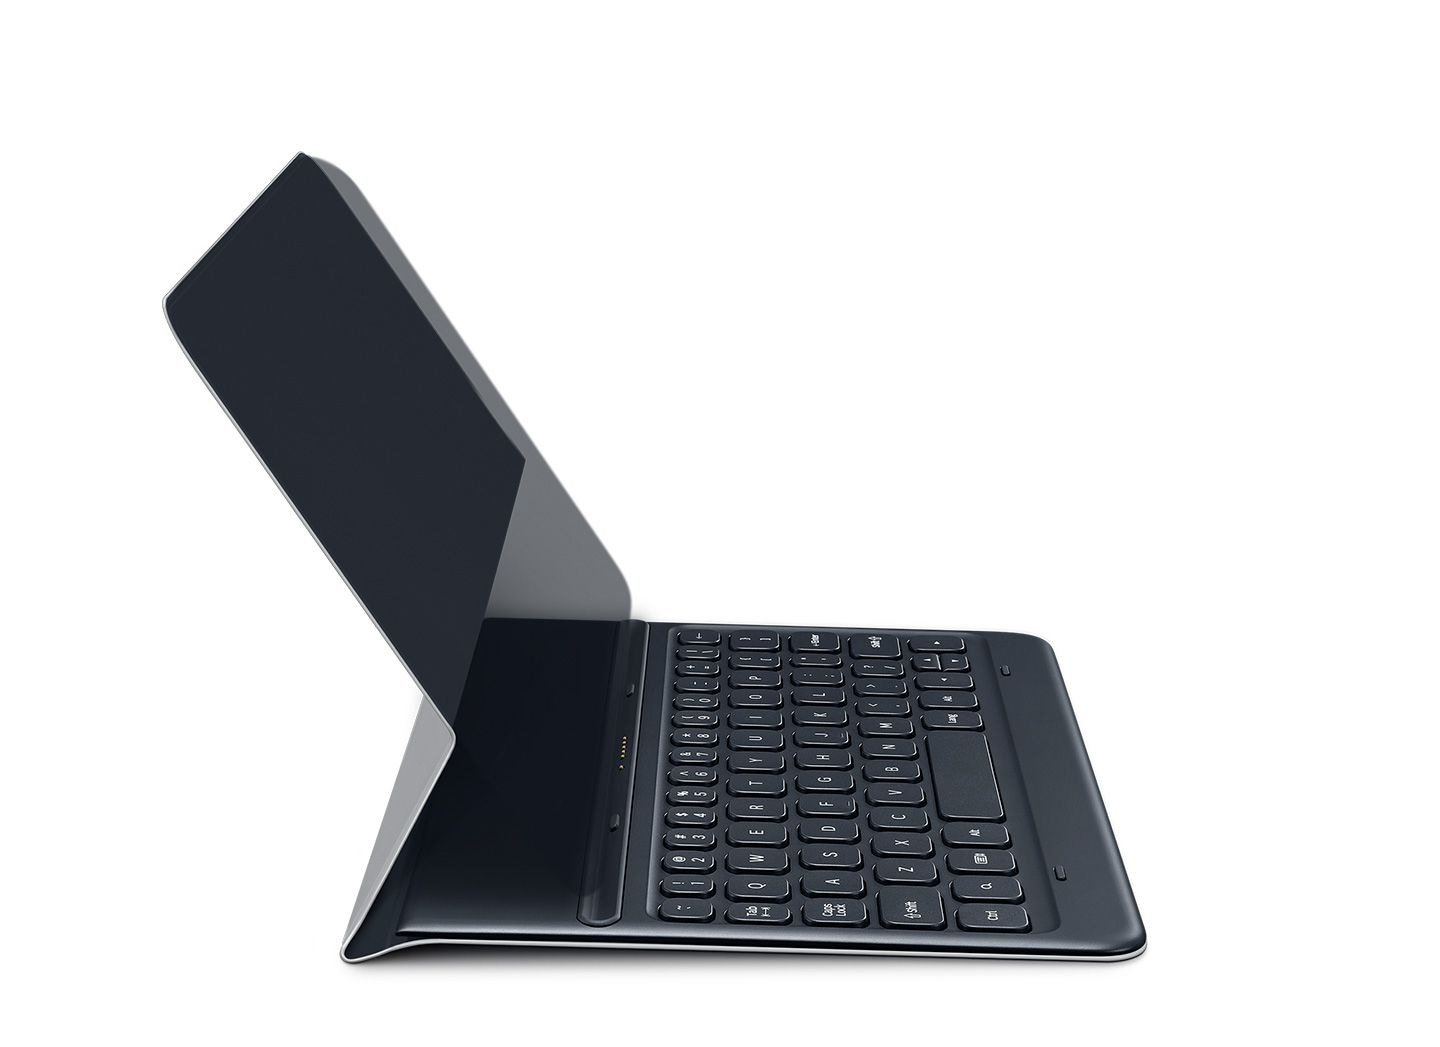 Illustrative image showing how Galaxy Tab S3 connects easily with the dedicated keyboard